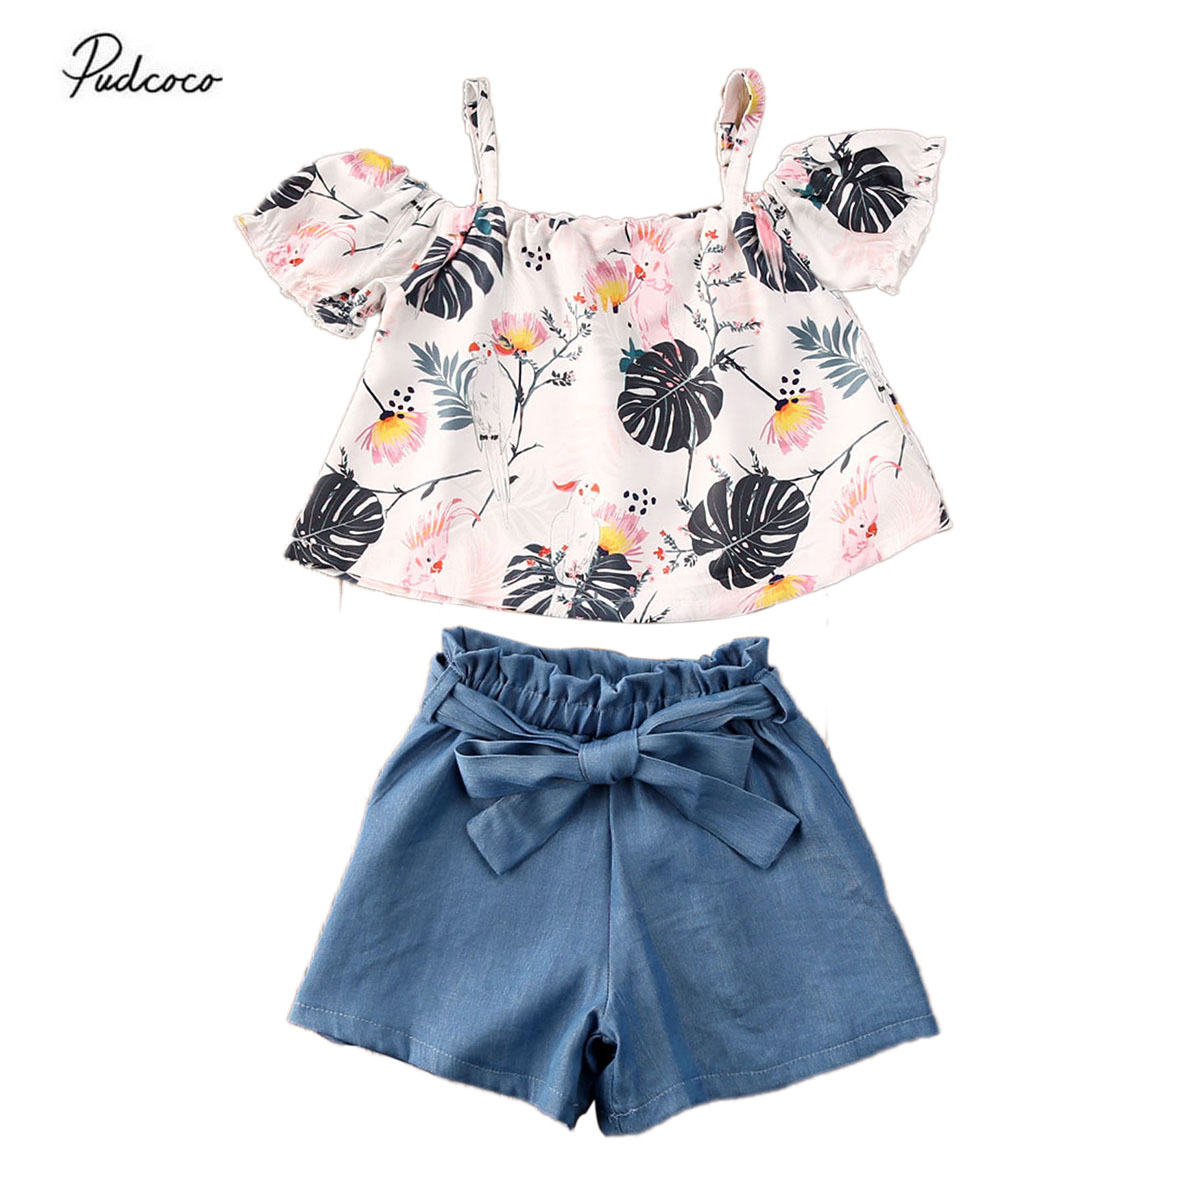 Toddler Baby Girl Clothes Long Sleeve Cotton Linen Button Dress Shirt Top with Pockets Outfit